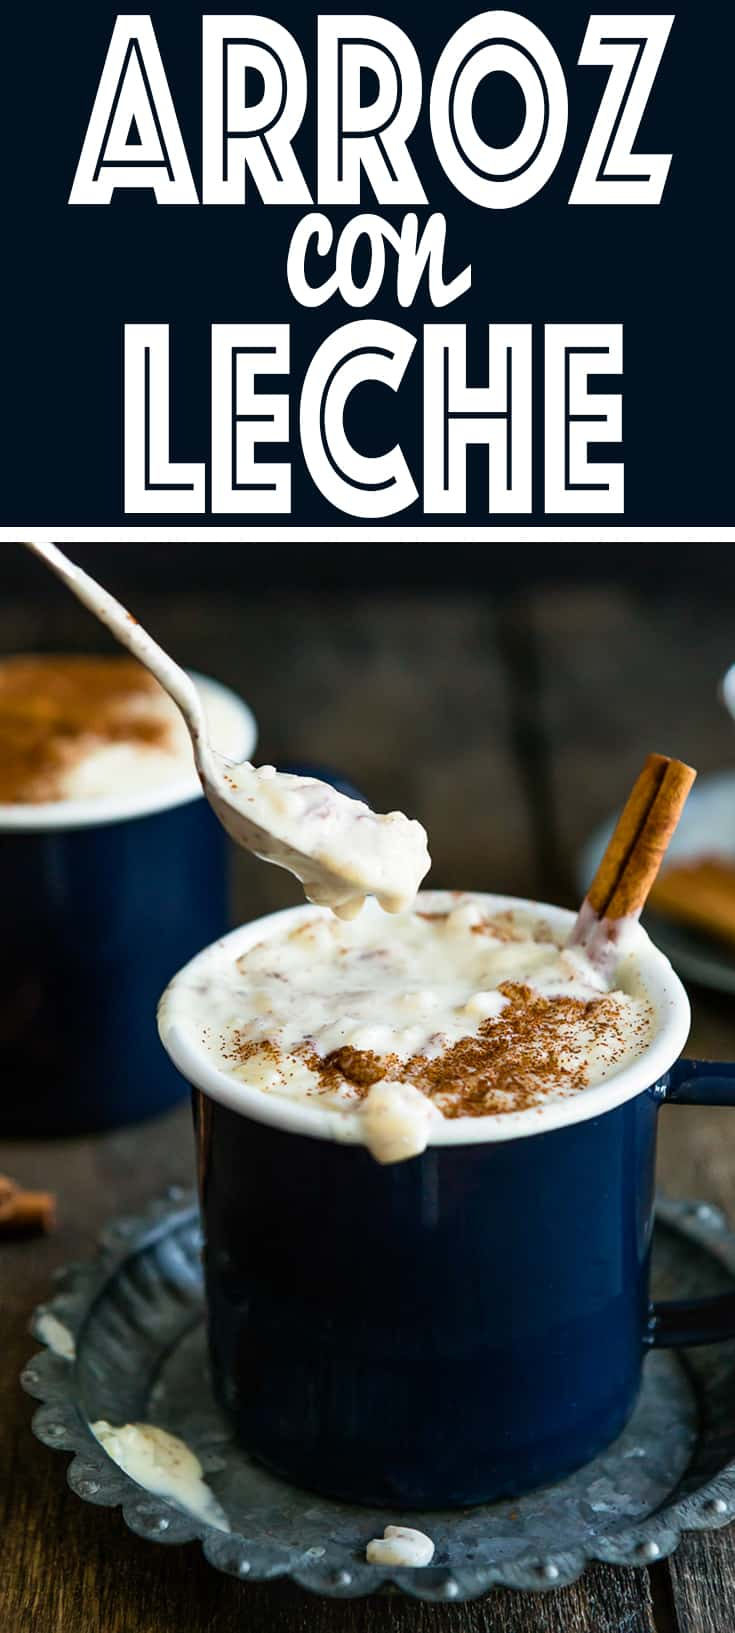 Arroz con Leche is the Spanish version of the well-known rice pudding. It's the ultimate comfort dessert. And almost without fail, this dessert will make you feel closer to home with every spoon, especially when served warm… so simple, but so perfect! http://mommyshomecooking.com